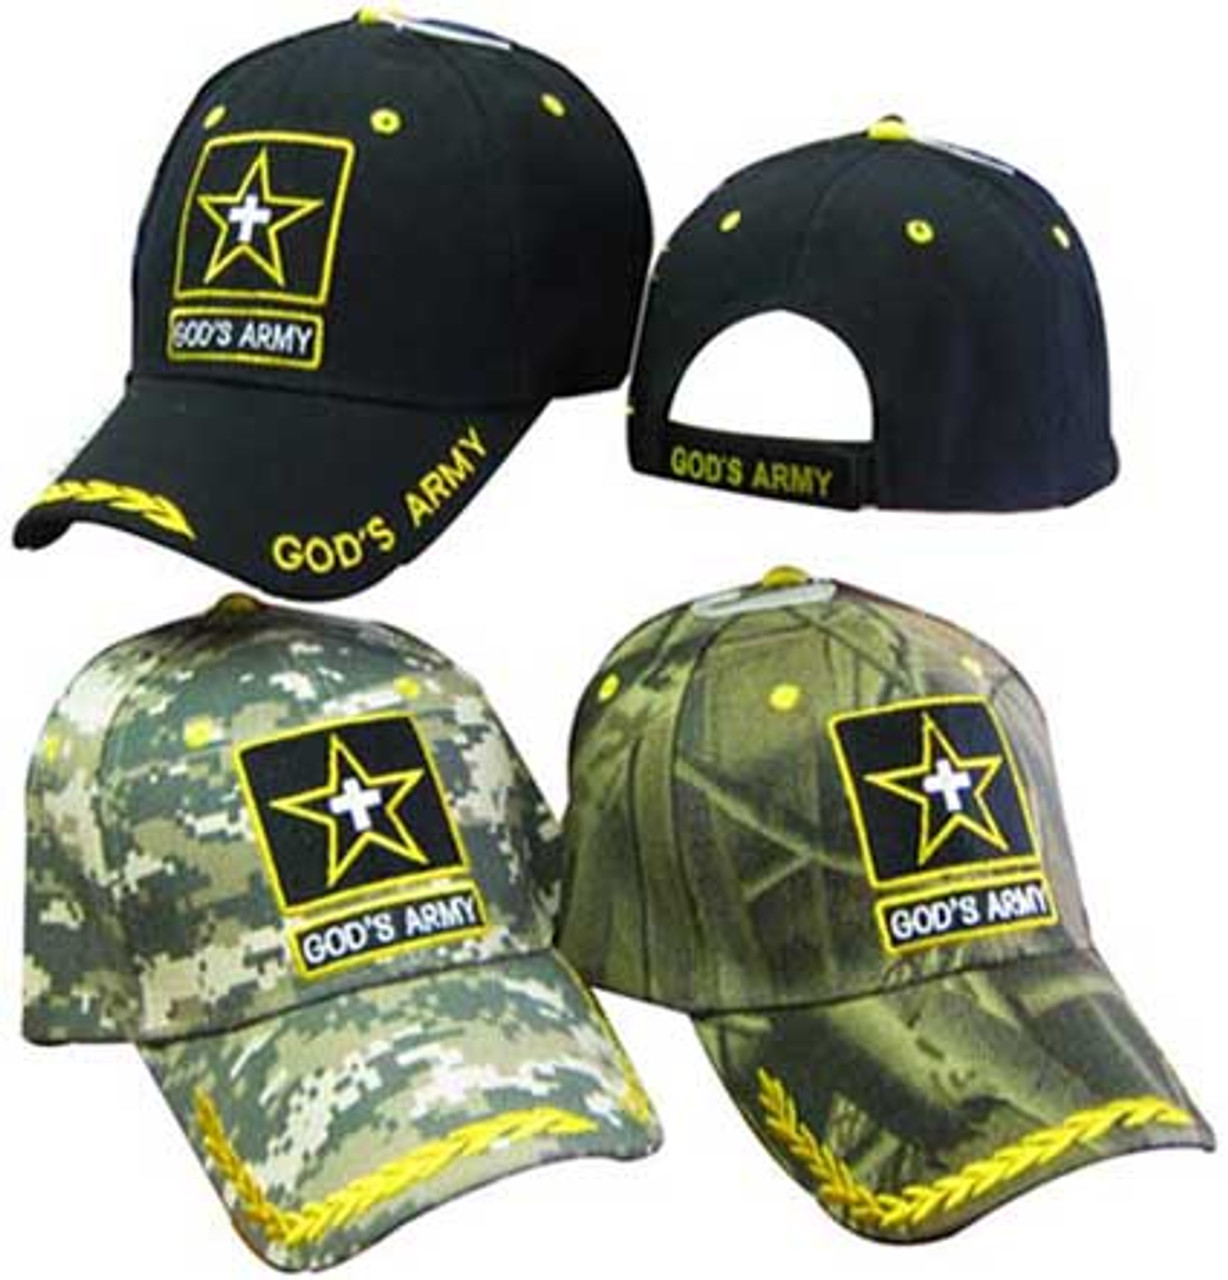 7b05d8113fd GODS ARMY CHRISTIAN HAT BASEBALL CAP Great way to share your faith